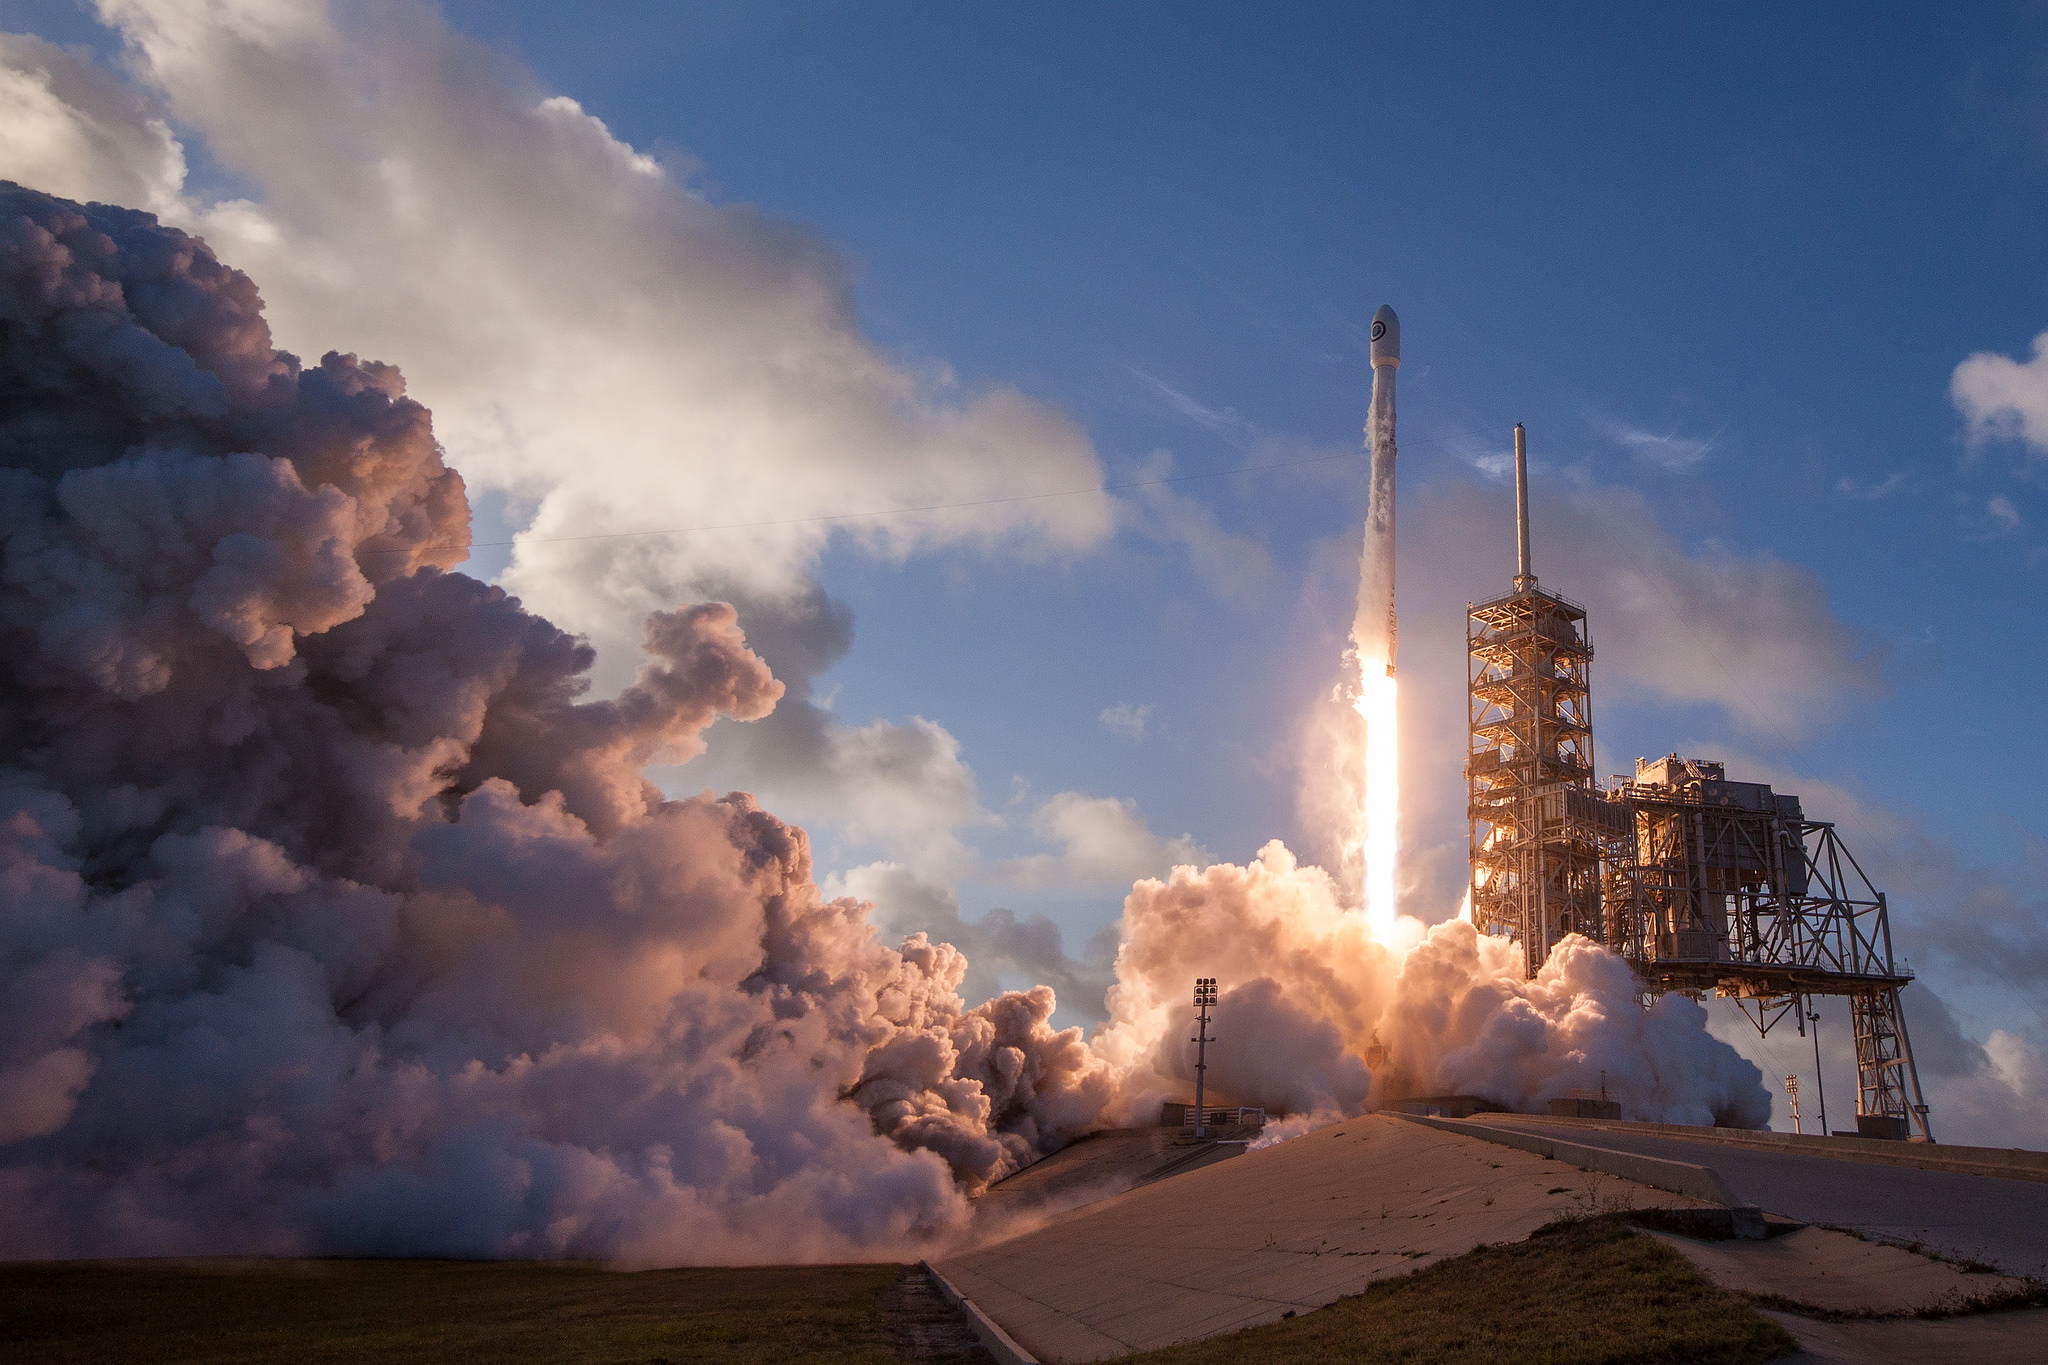 SpaceX has made its last launch before Falcon Heavy ...